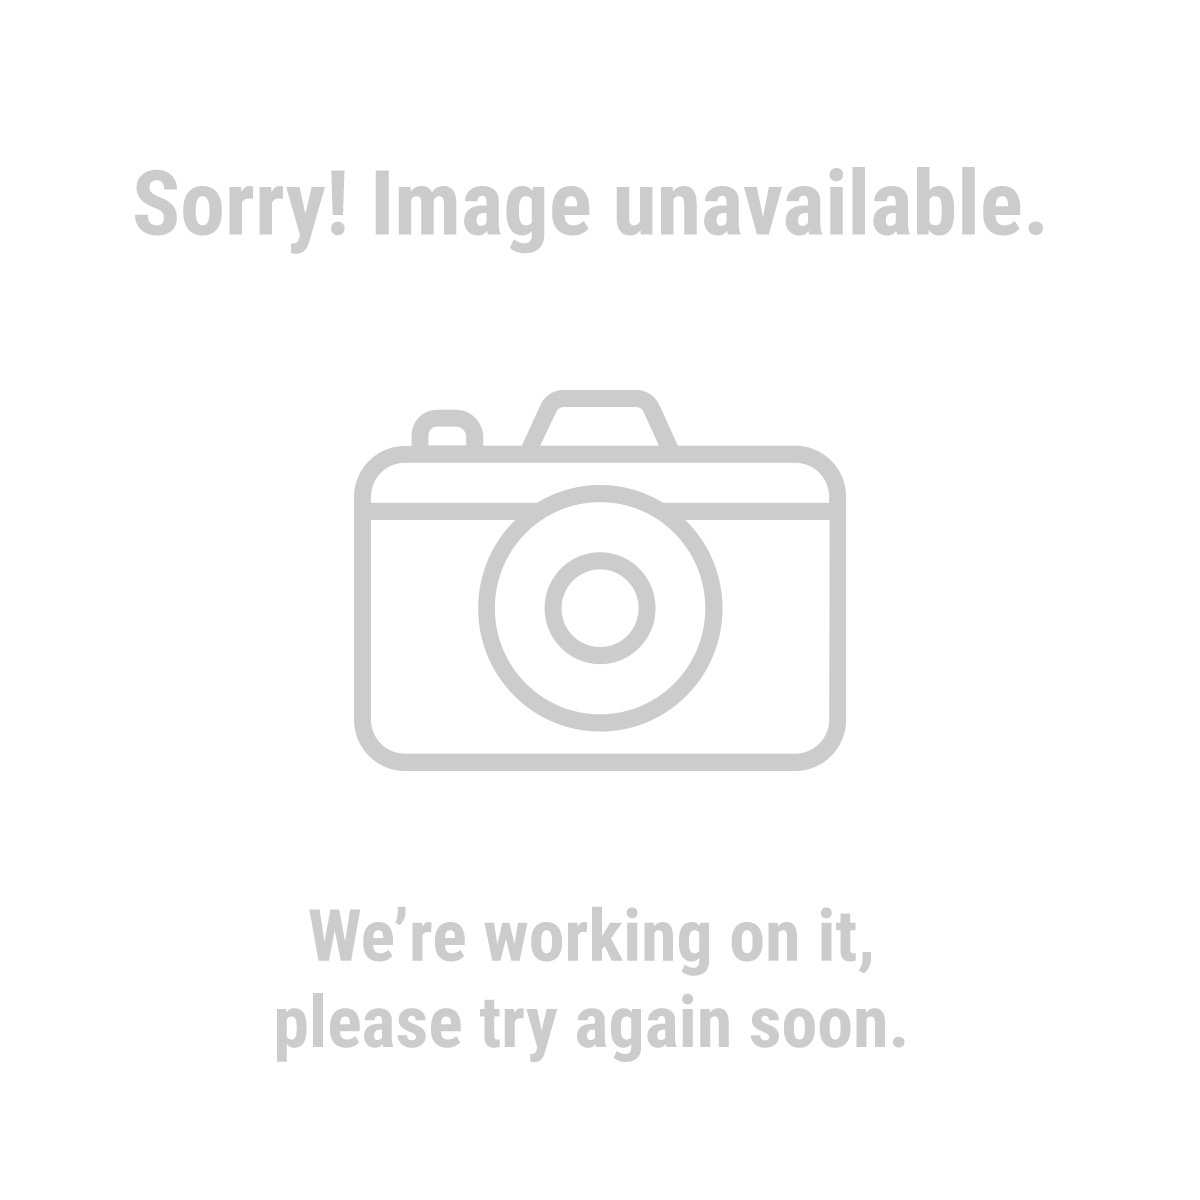 Haul-Master 67649 10,000 Lb. Capacity Weight-Distributing Hitch System